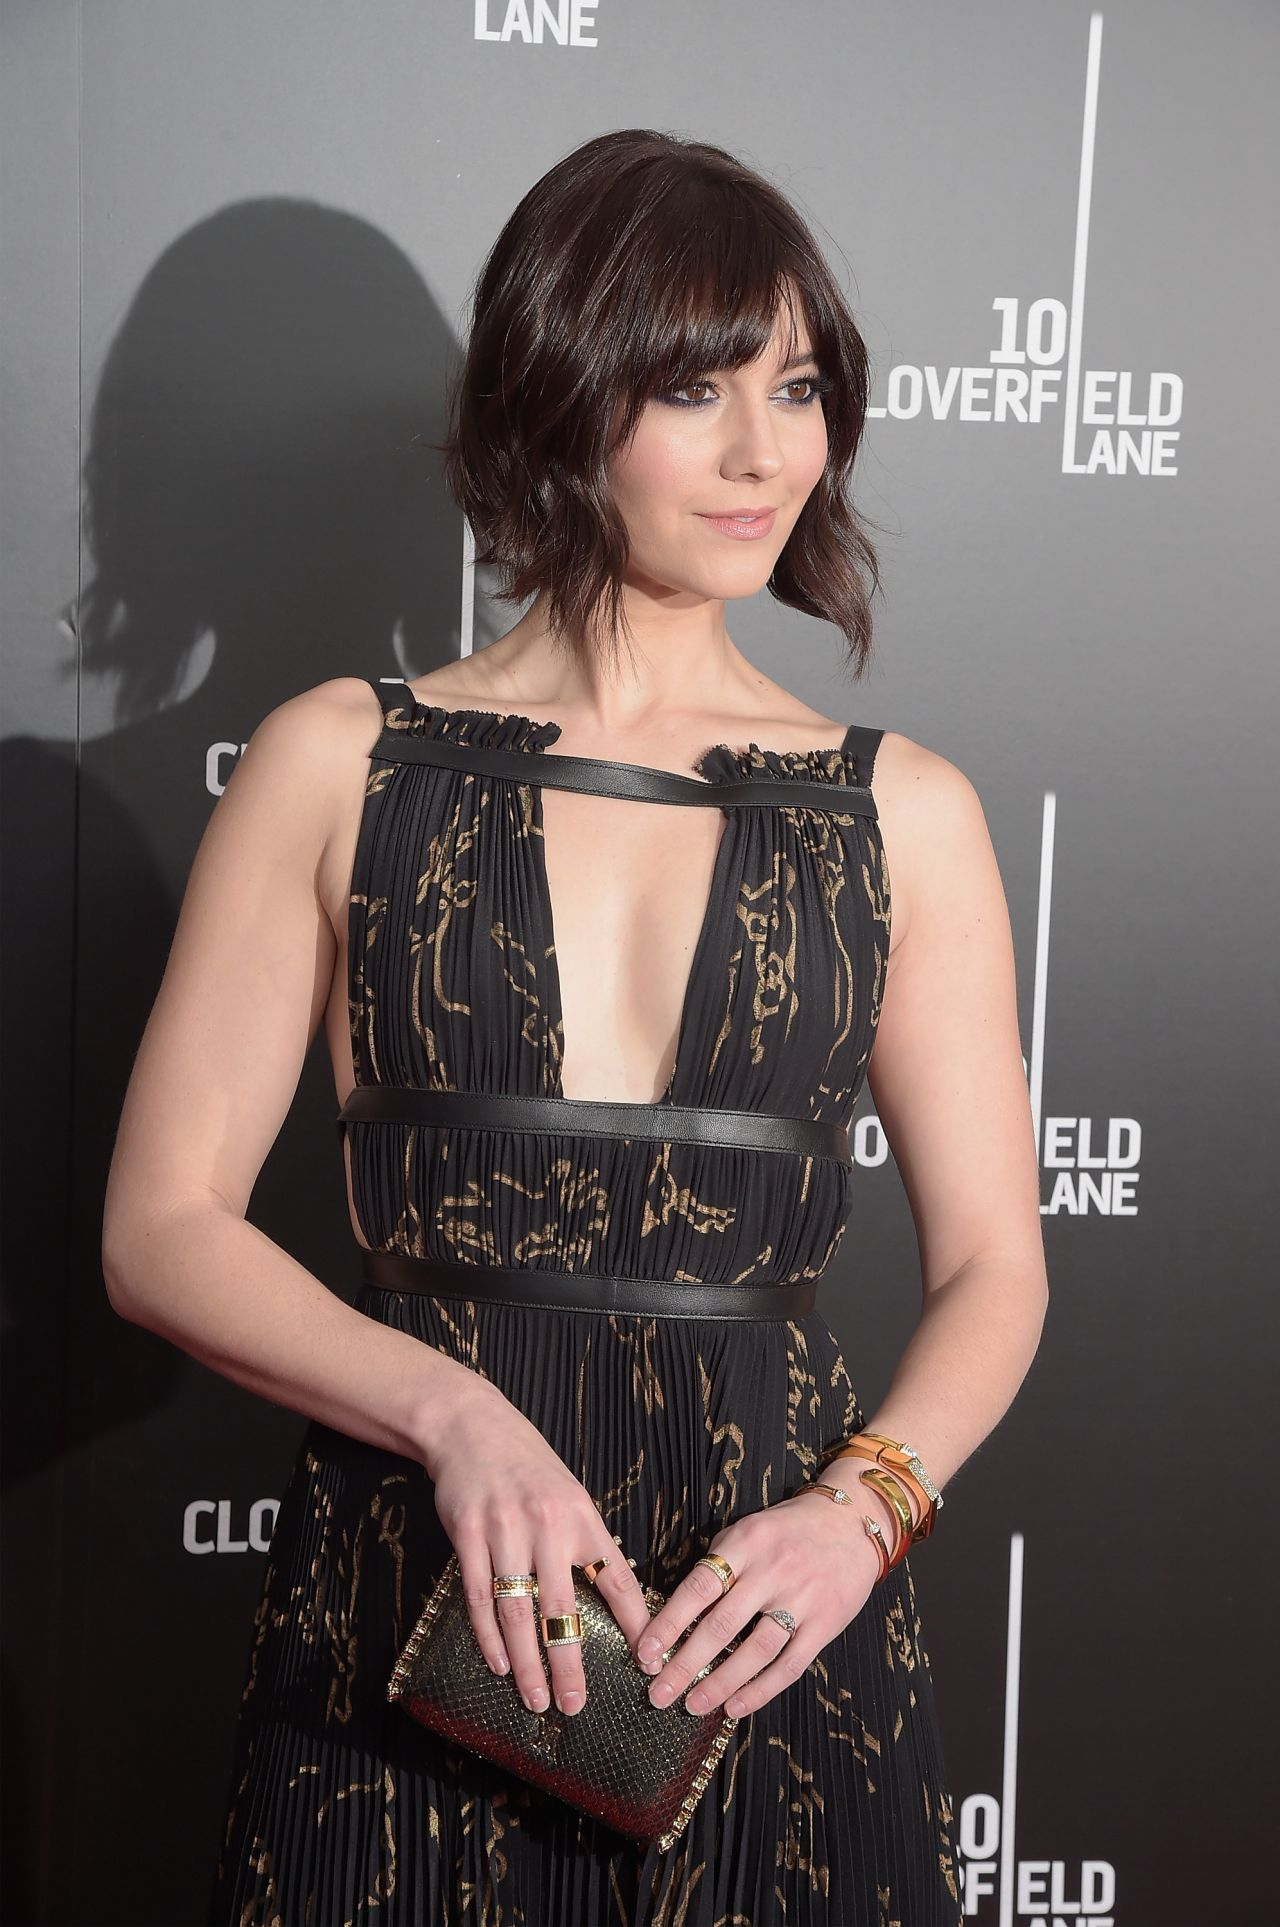 mary-elizabeth-winstead-10-cloverfield-lane-premiere-in-new-york-city-9